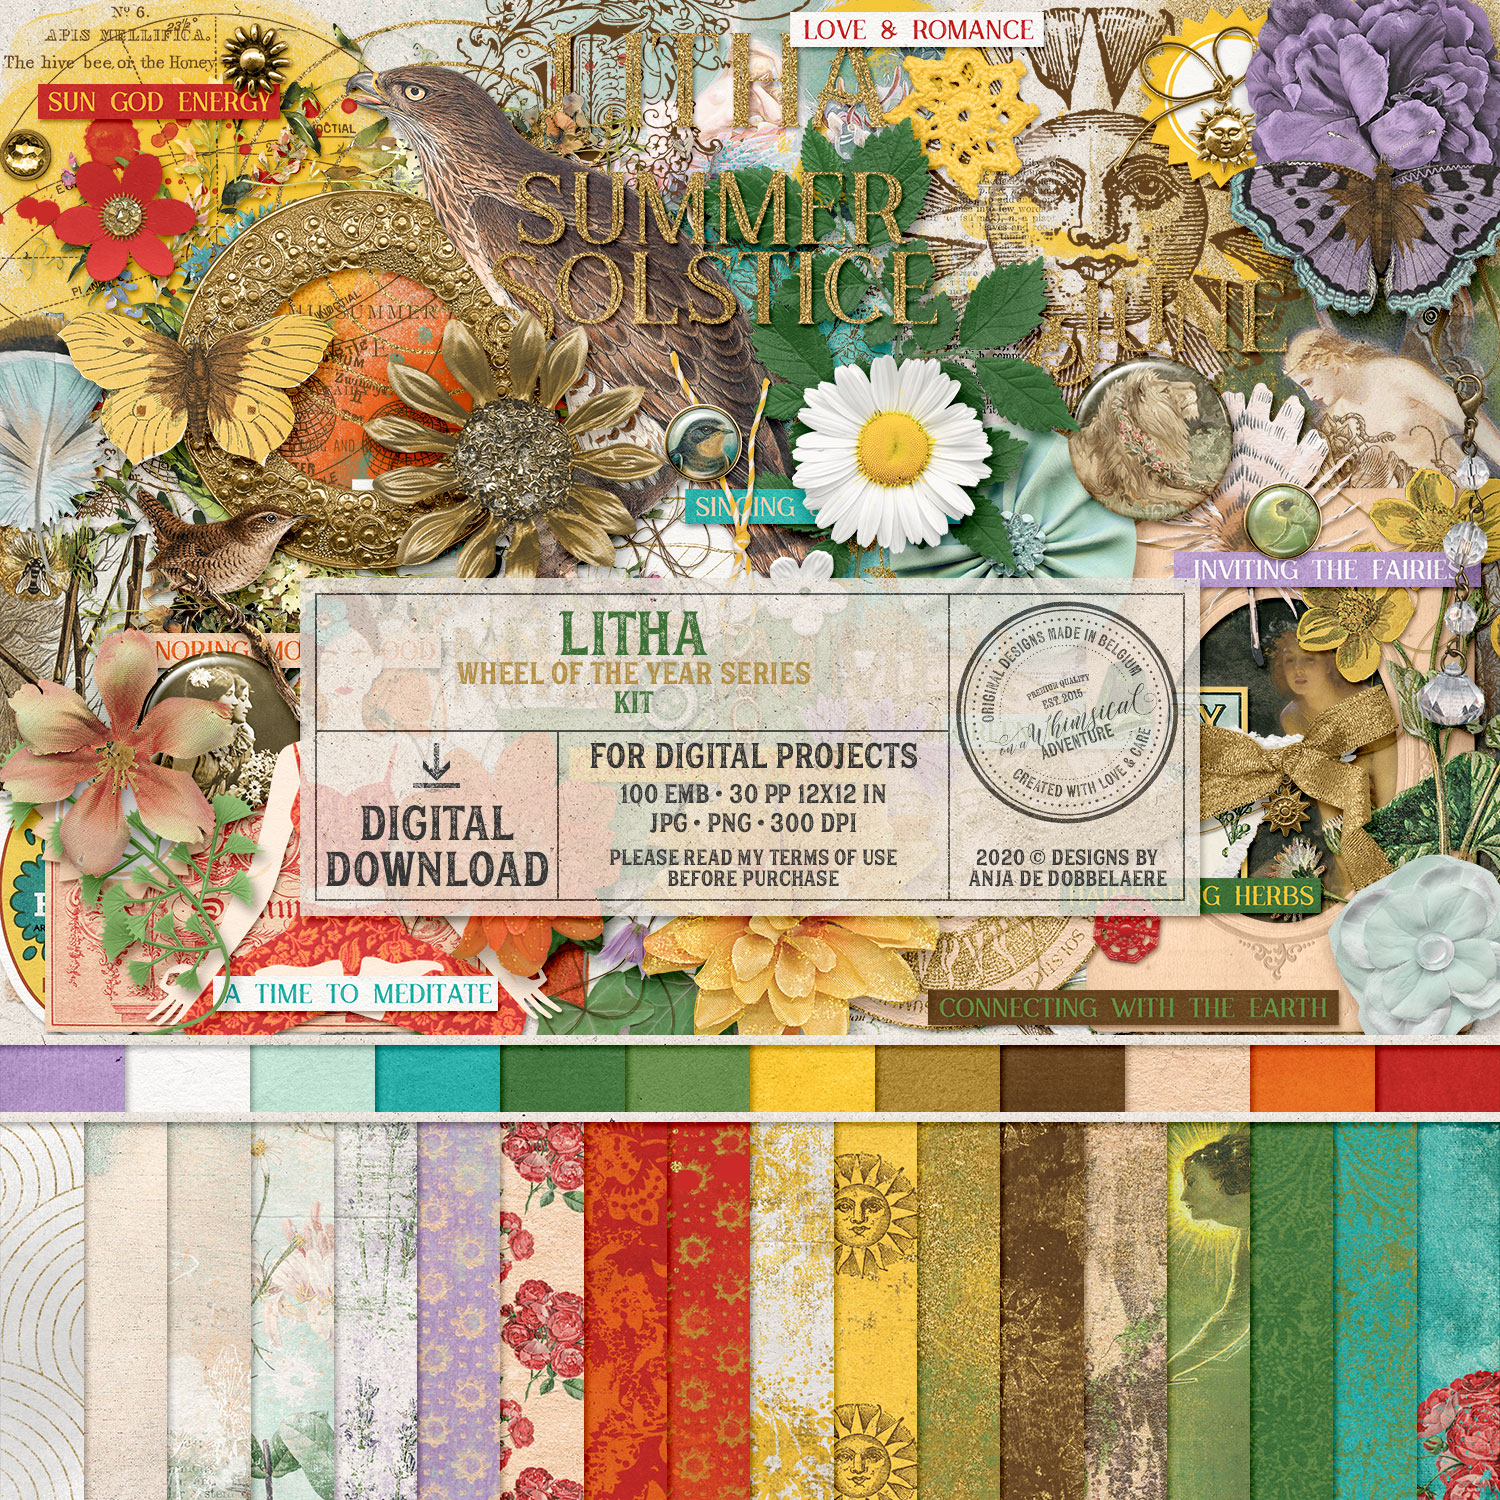 Wheel Of The Year Litha Kit by On A Whimsical Adventure